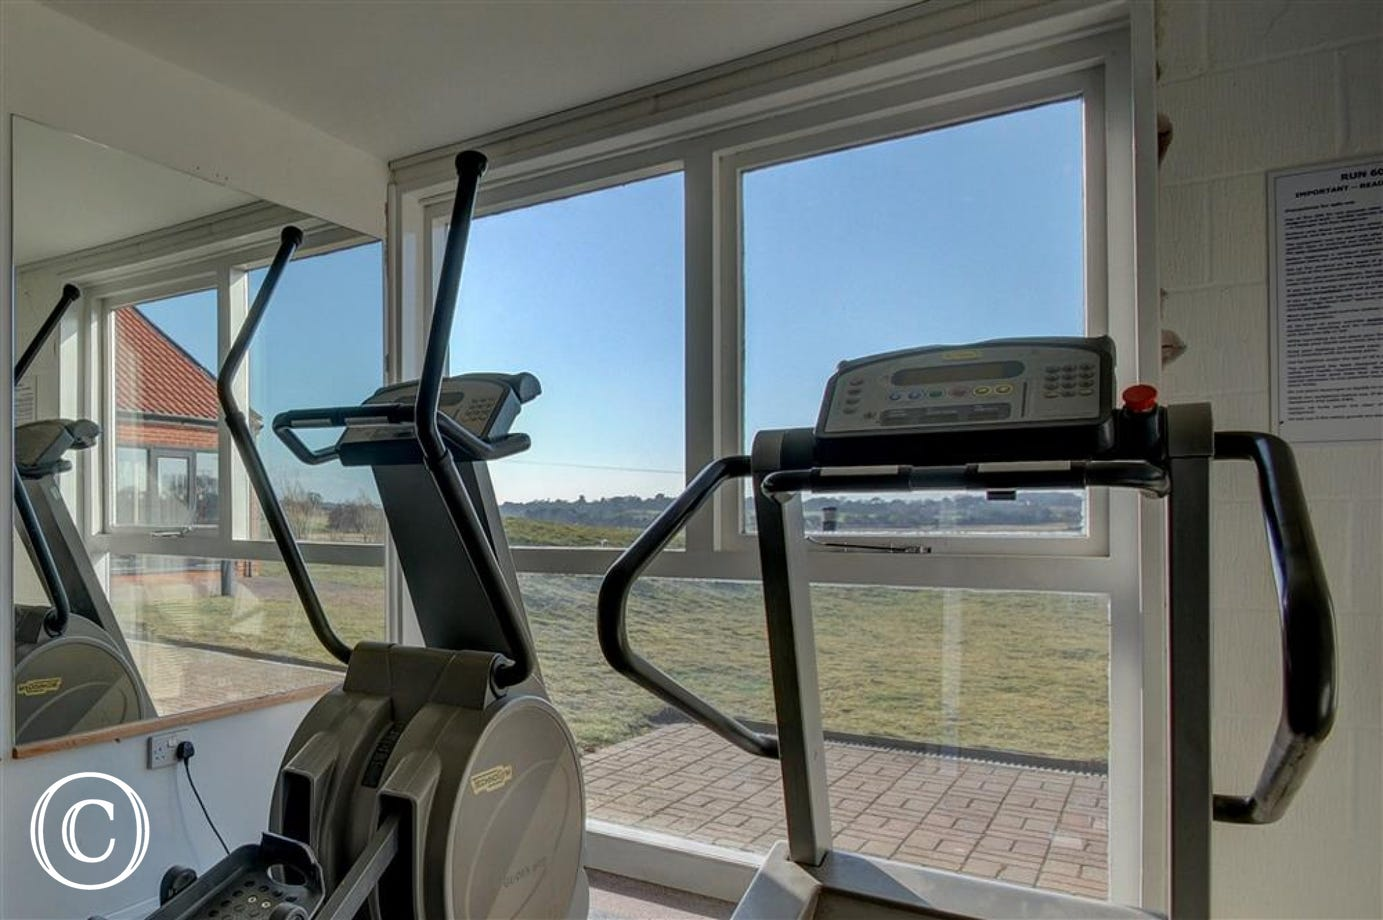 Gym Room - View 2